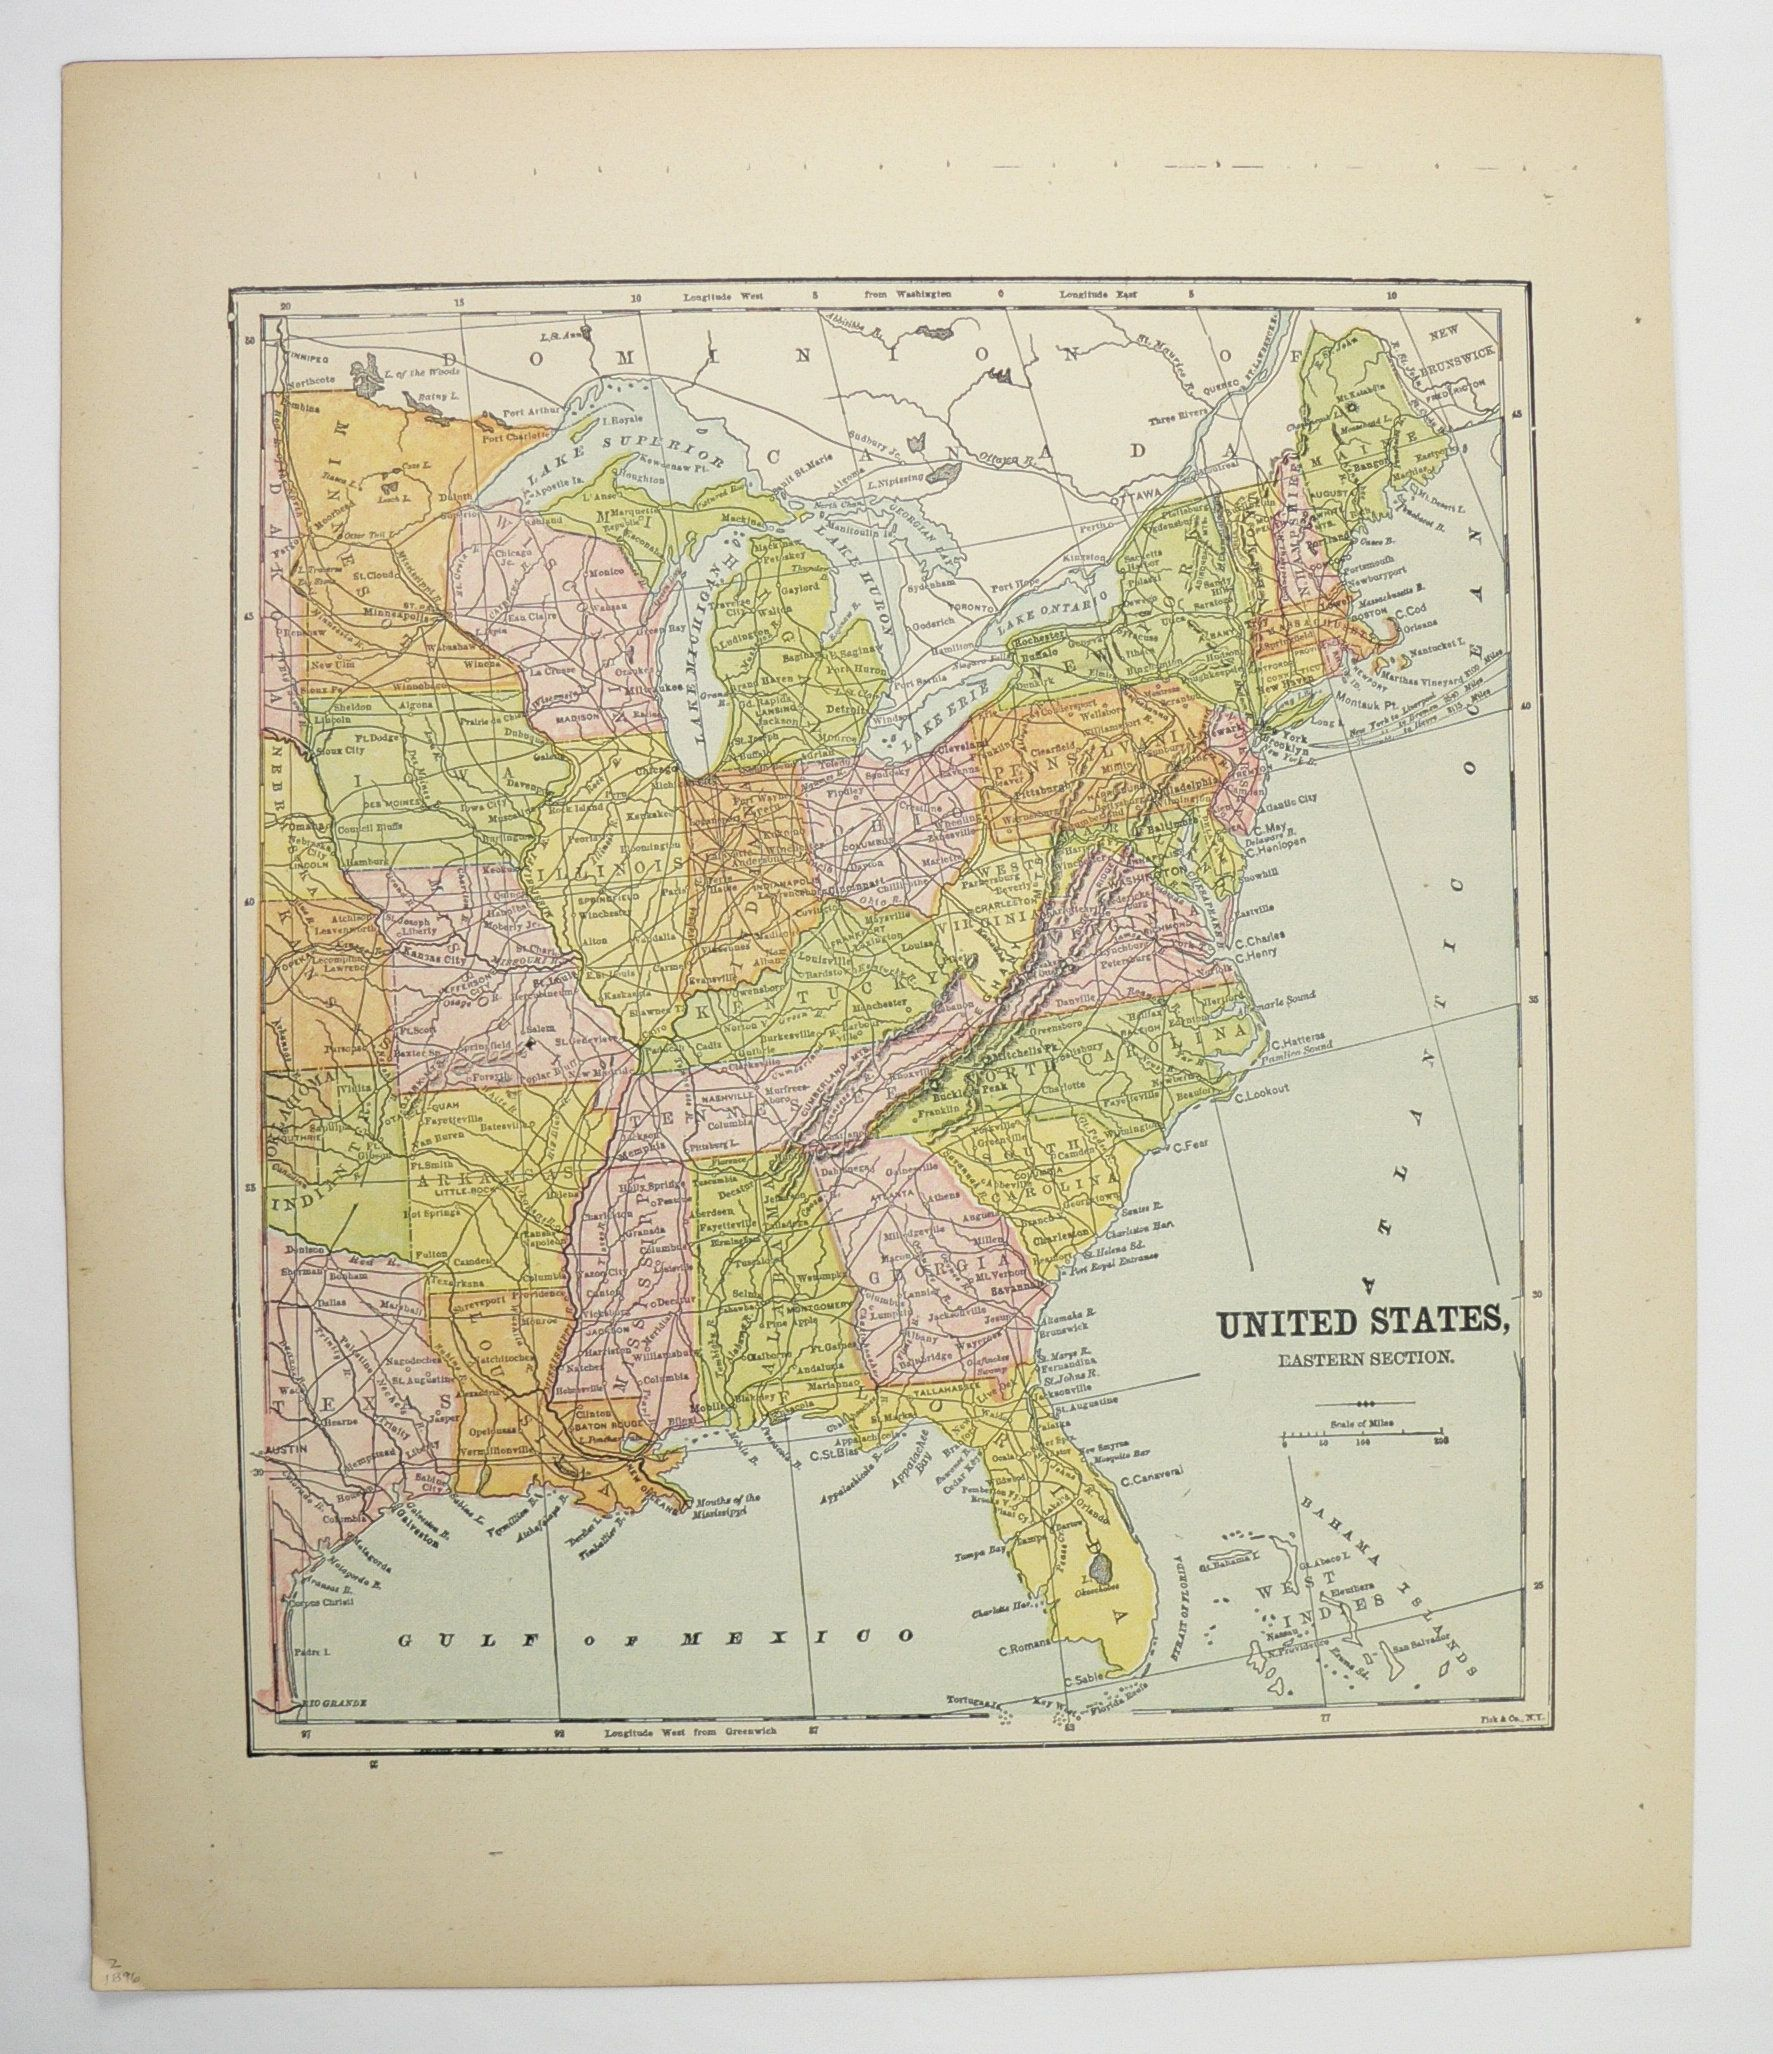 Eastern United States Map 1896 Antique Map, East Coast US ...